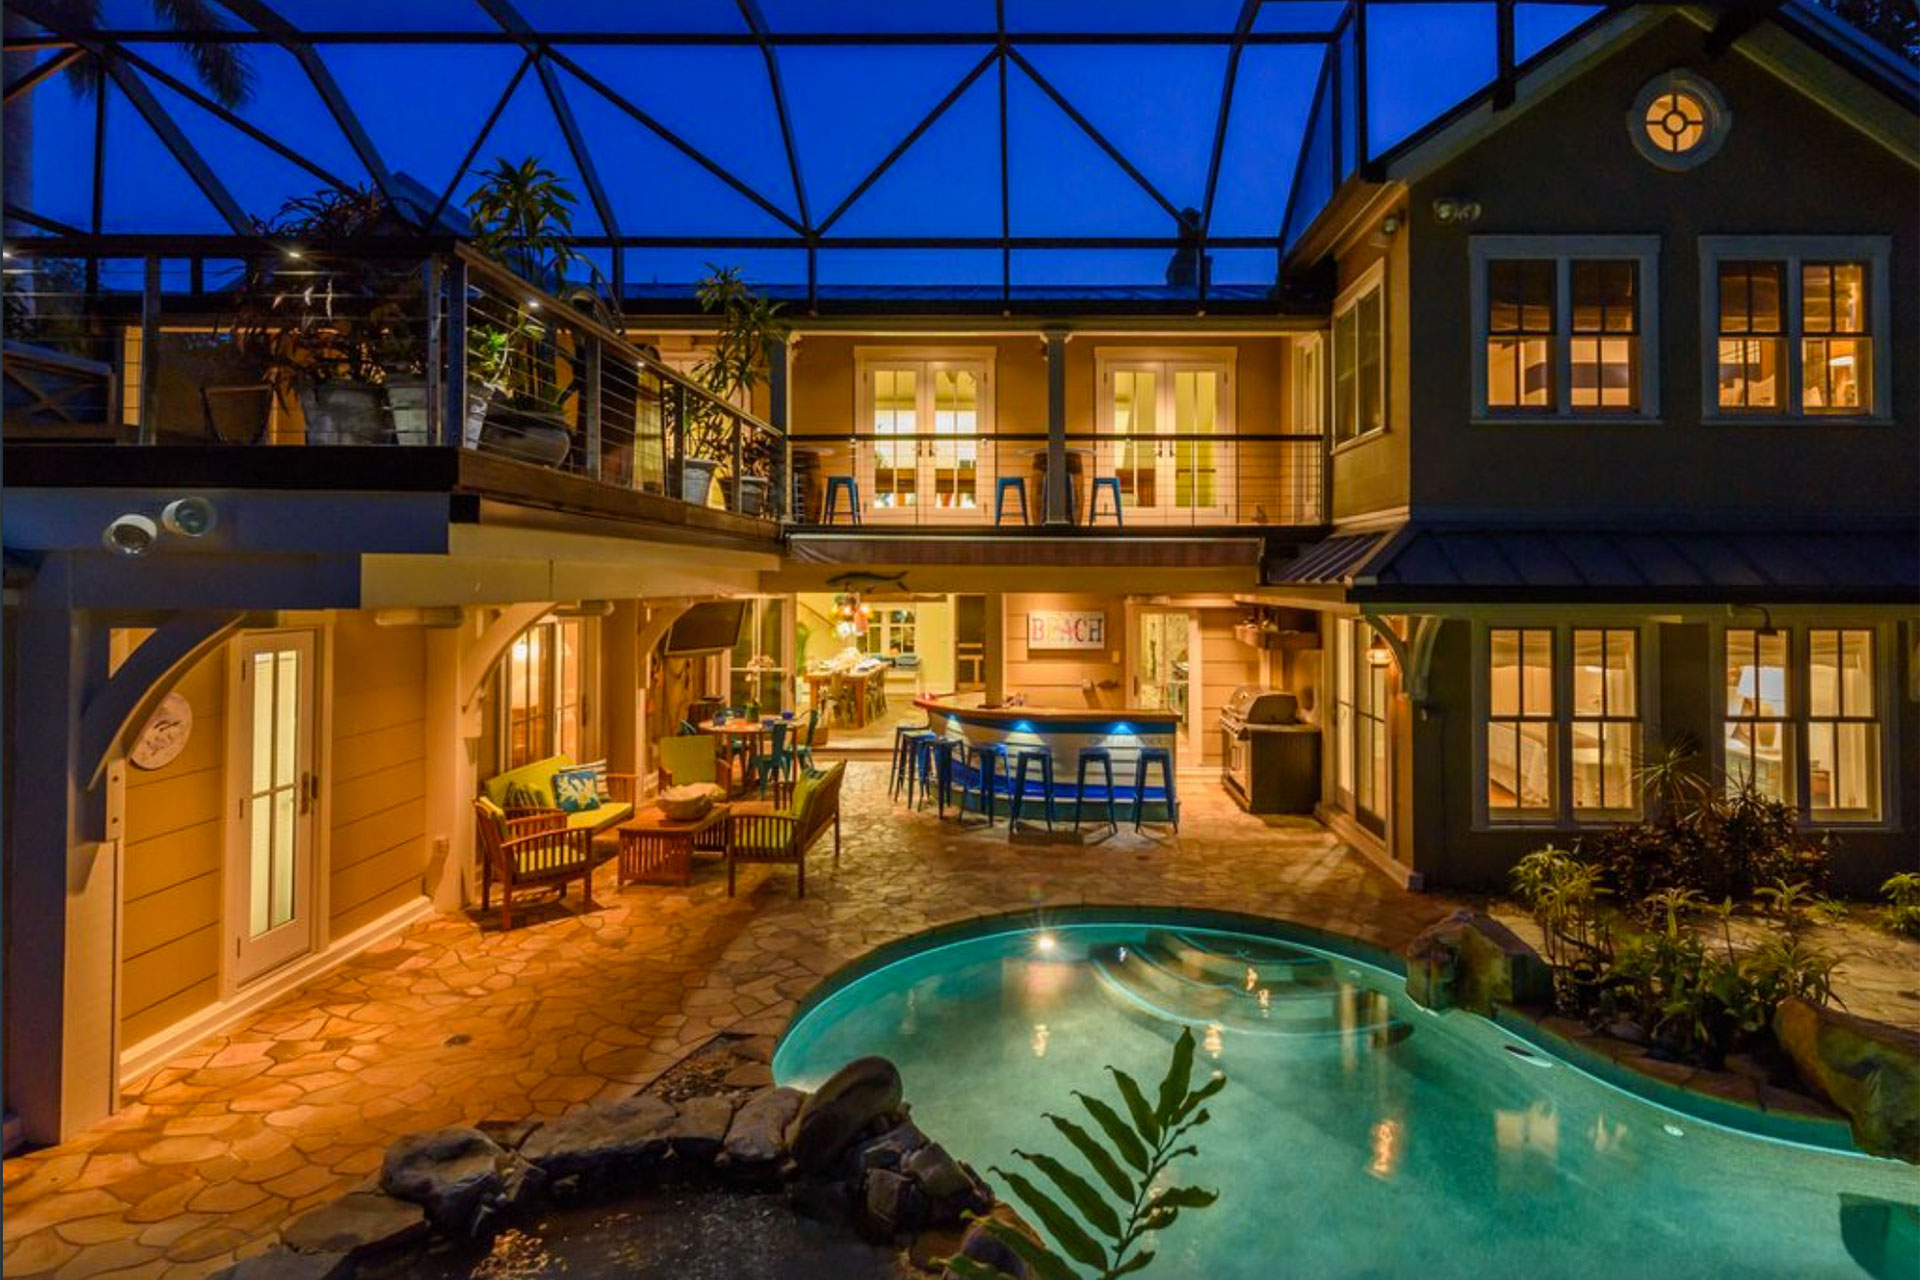 Rum Cove Vacation Rental on Anna Maria Island in Florida; Courtesy of VRBO/HomeAway